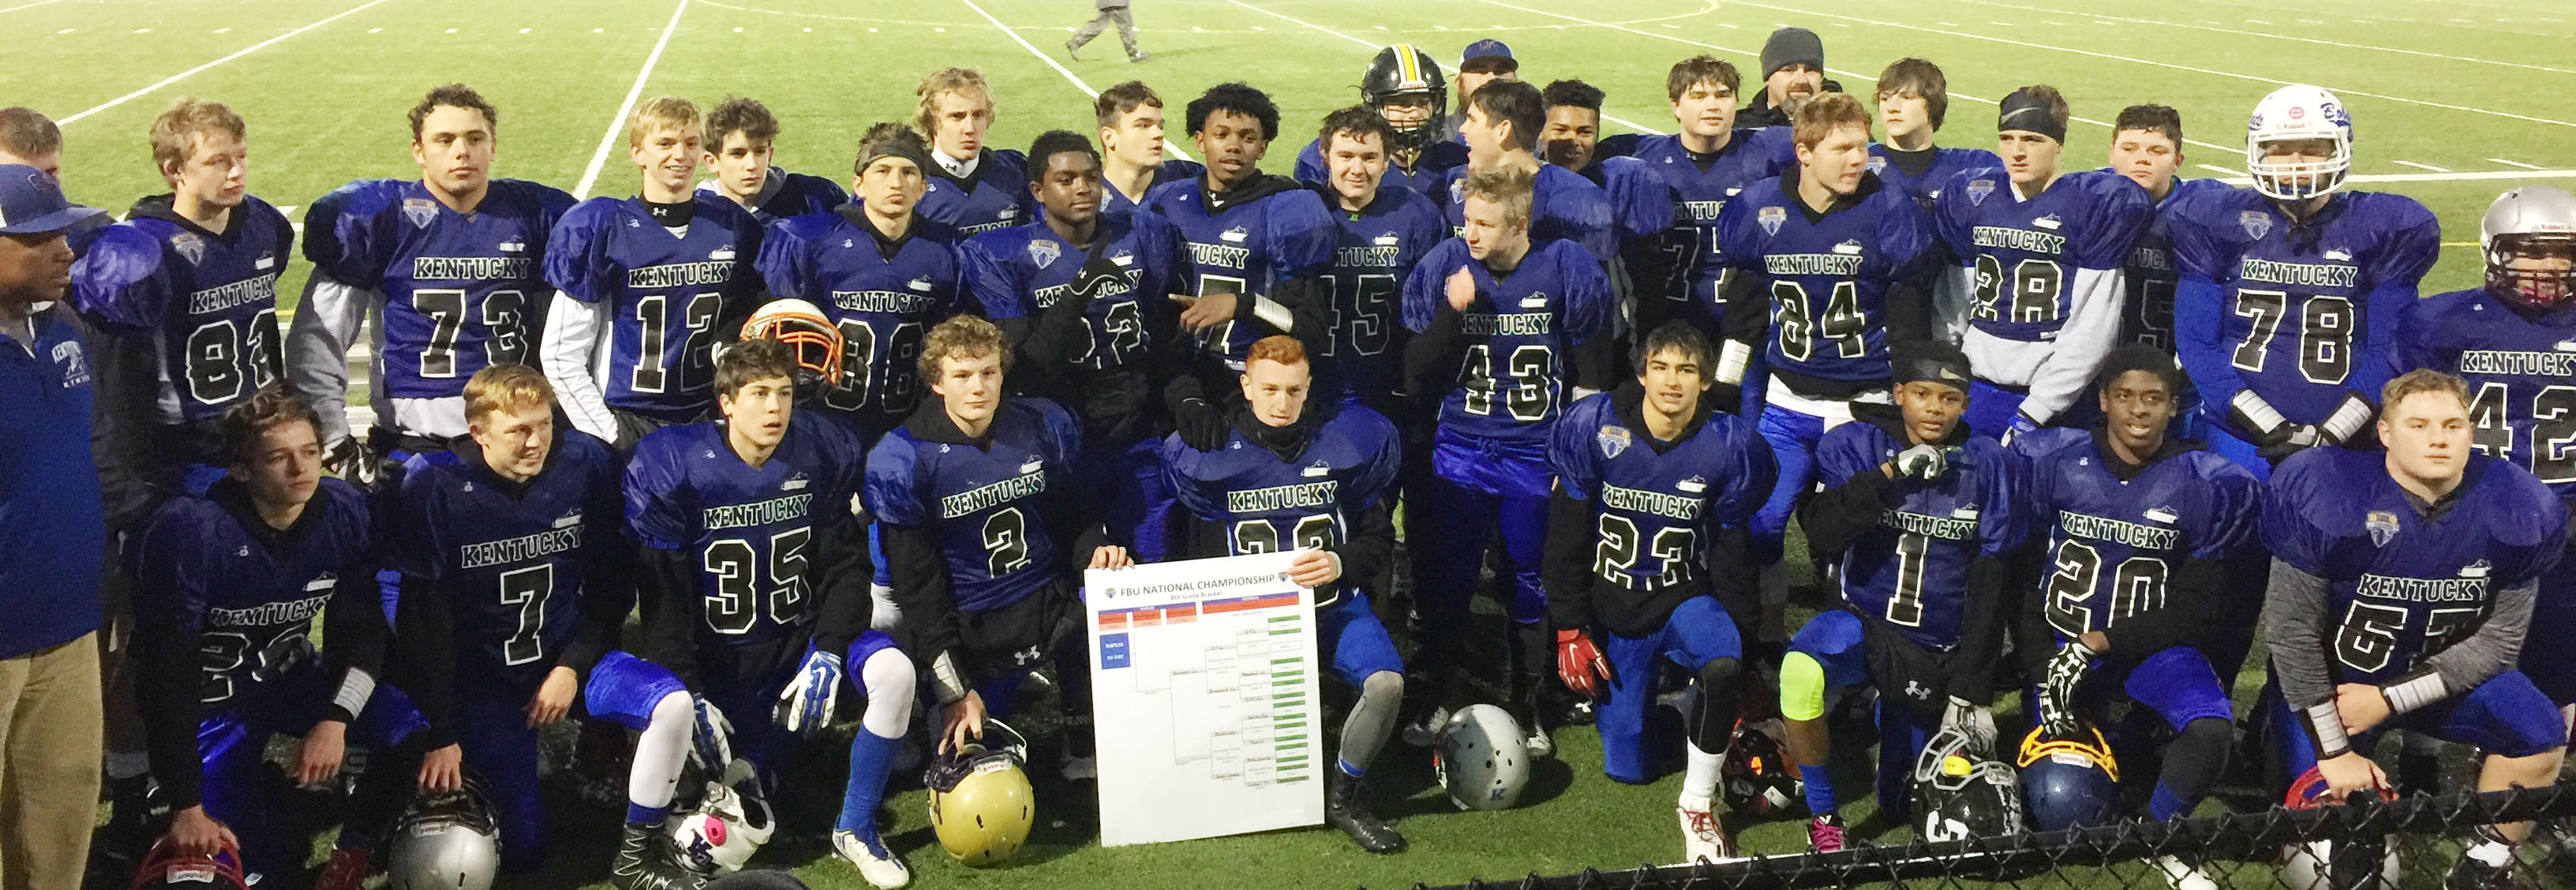 Team Kentucky now advances to the FBU National Championship in Naples, Fla., on Dec 17-20.